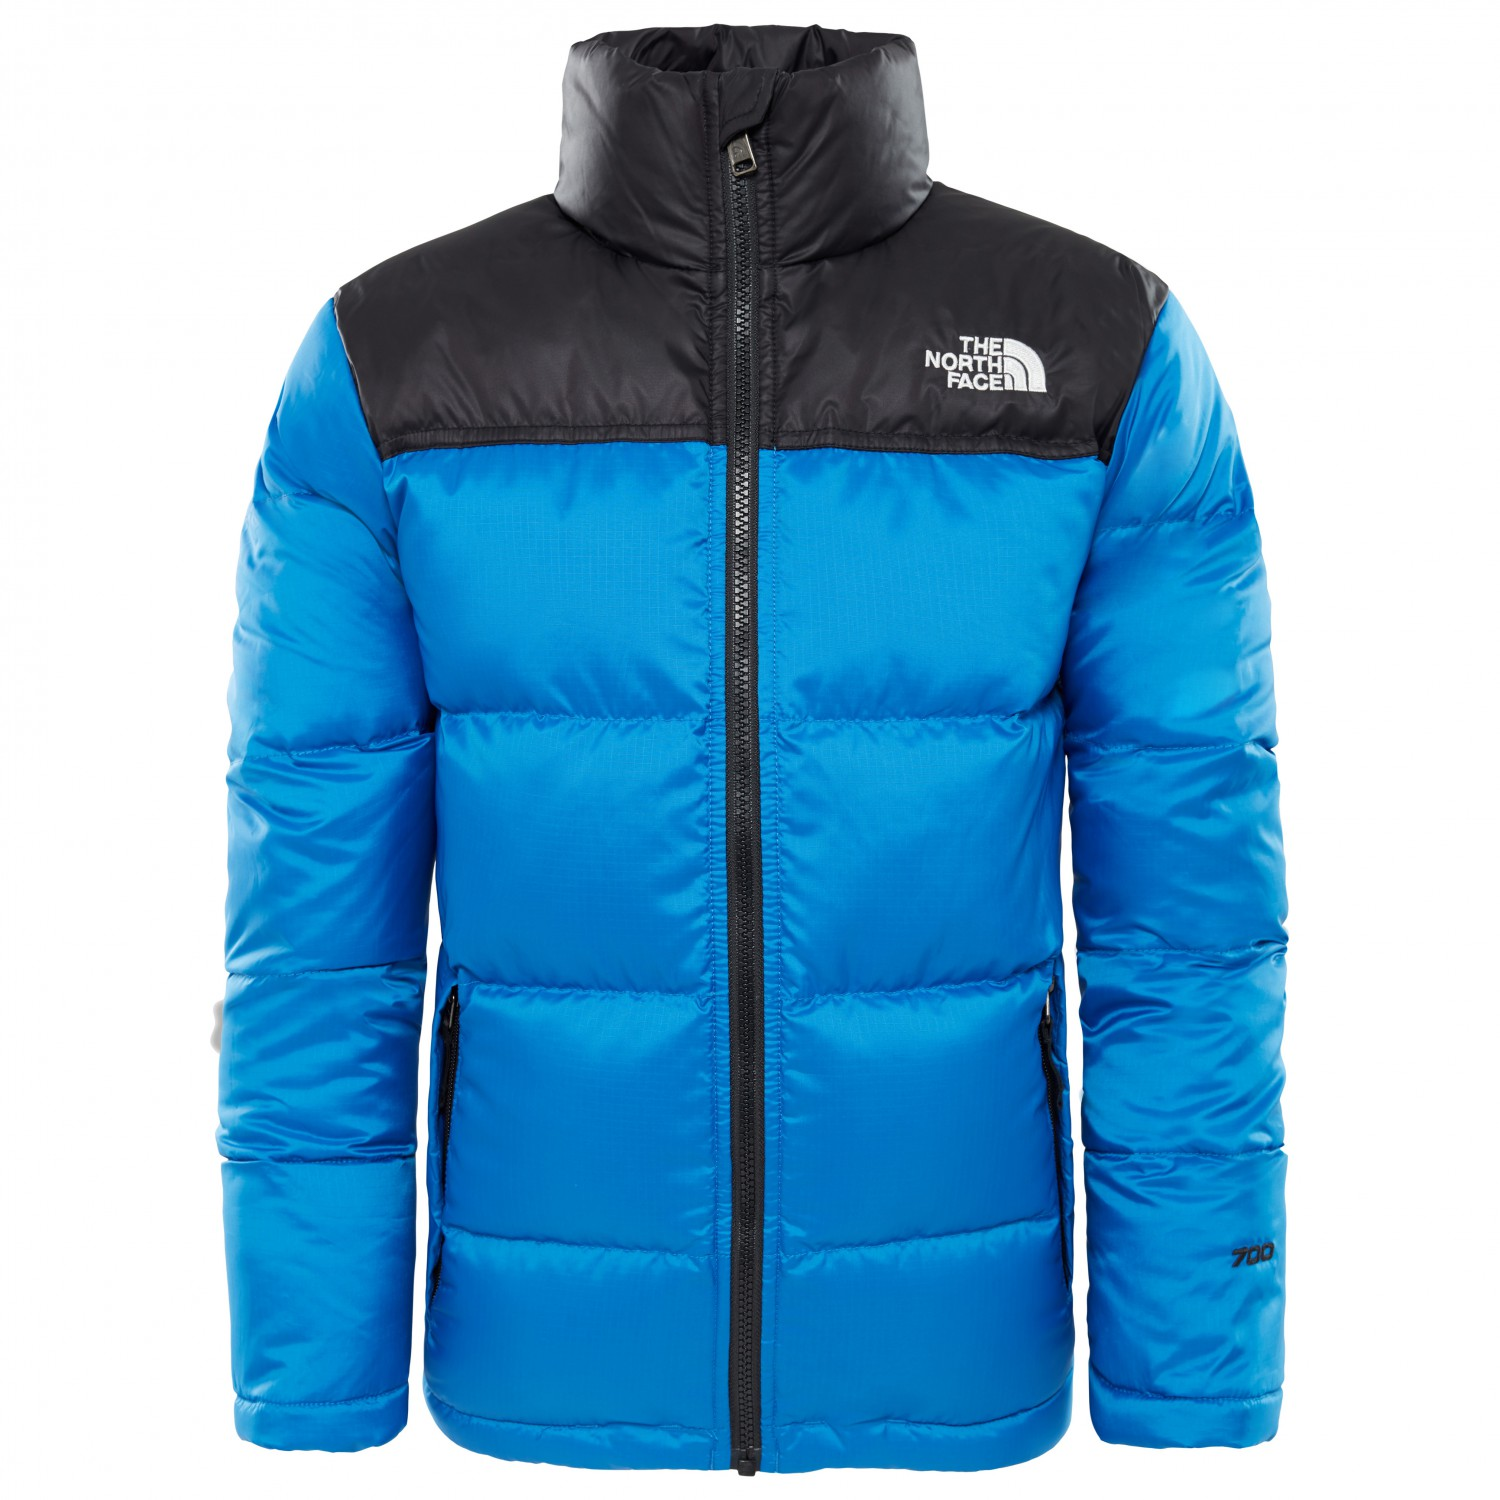 official photos f6fb0 00225 The North Face Nuptse Down Jacket - Daunenjacke Kinder ...